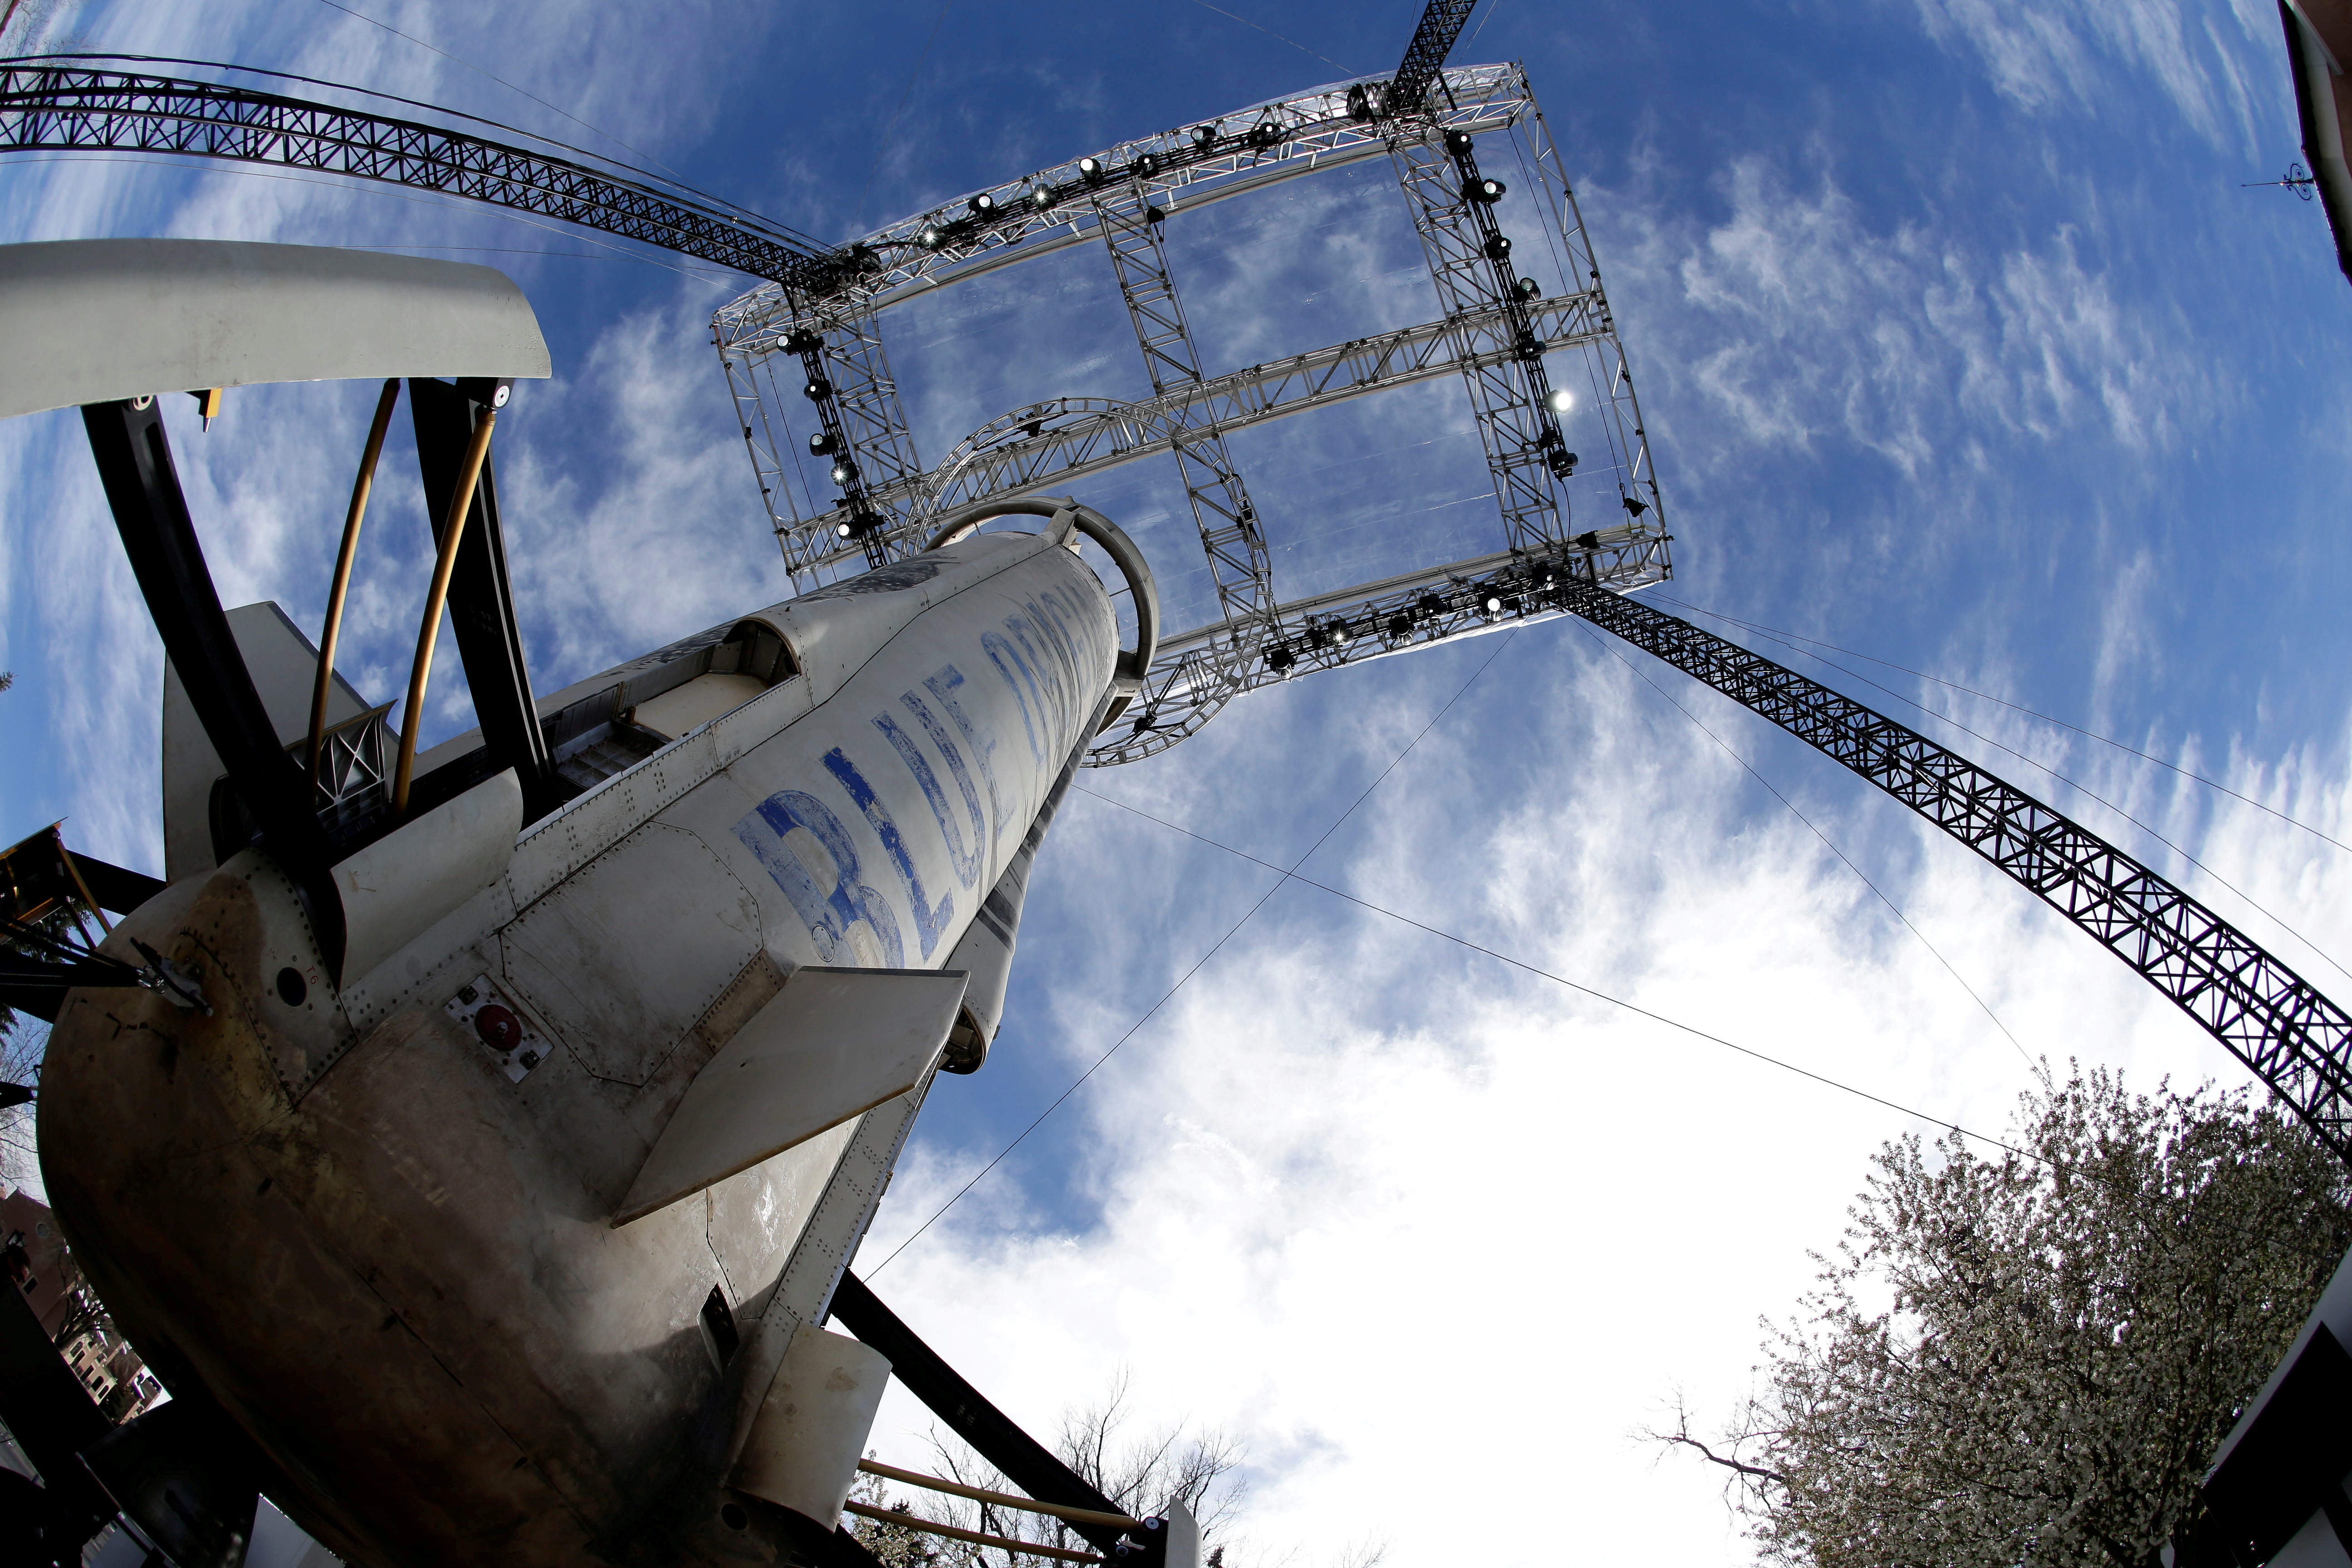 A general view of the Blue Origin New Shepard rocket booster at the 33rd Space Symposium in Colorado Springs, Colorado, United States April 5, 2017.  REUTERS/Isaiah J. Downing/File Photo